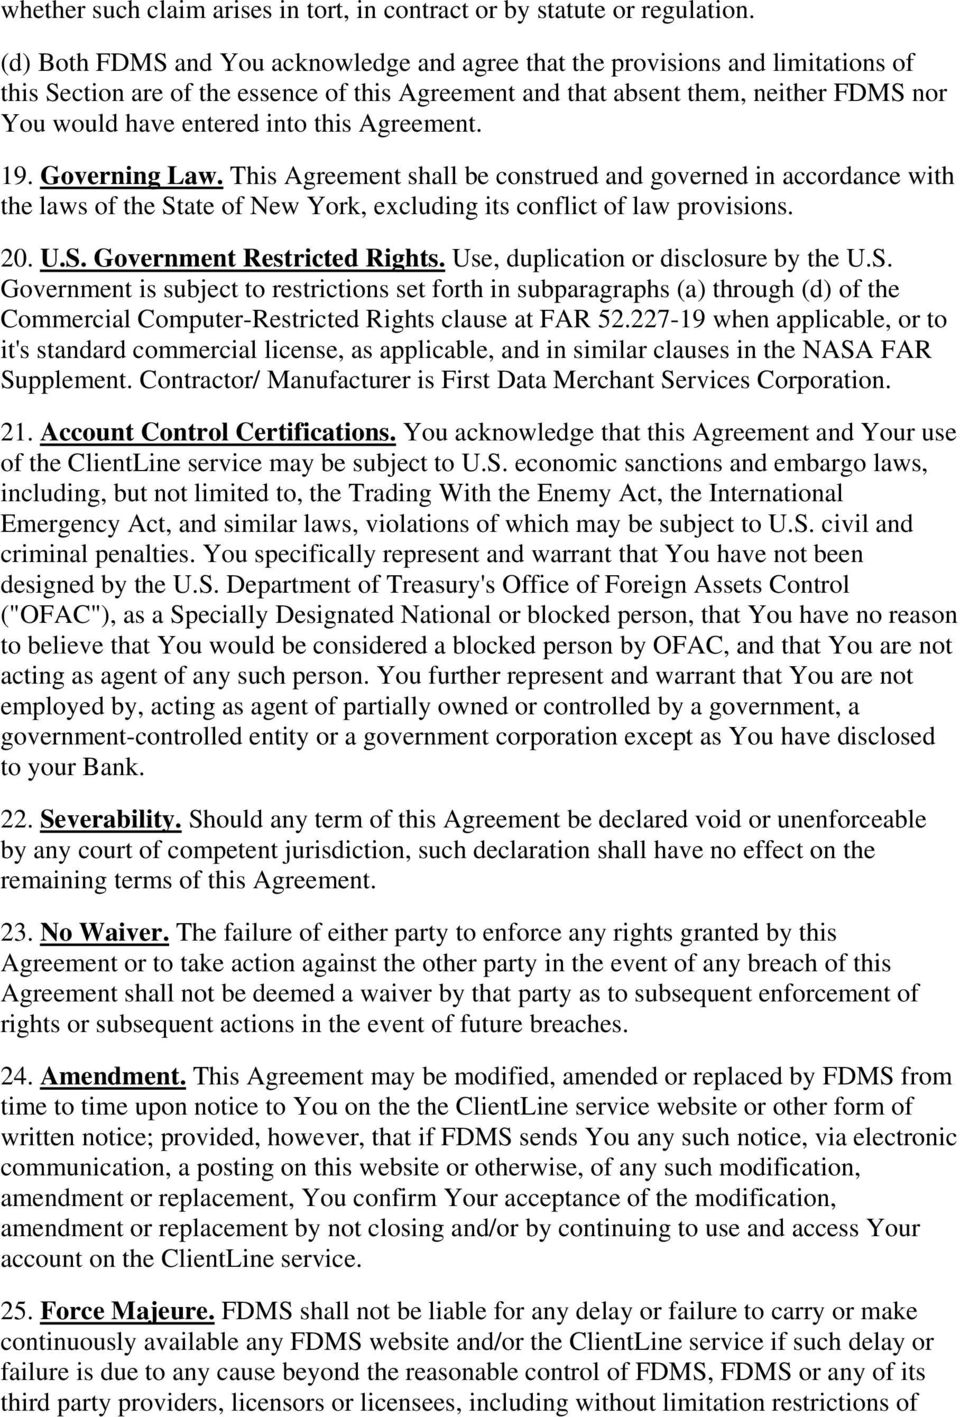 this Agreement. 19. Governing Law. This Agreement shall be construed and governed in accordance with the laws of the State of New York, excluding its conflict of law provisions. 20. U.S. Government Restricted Rights.